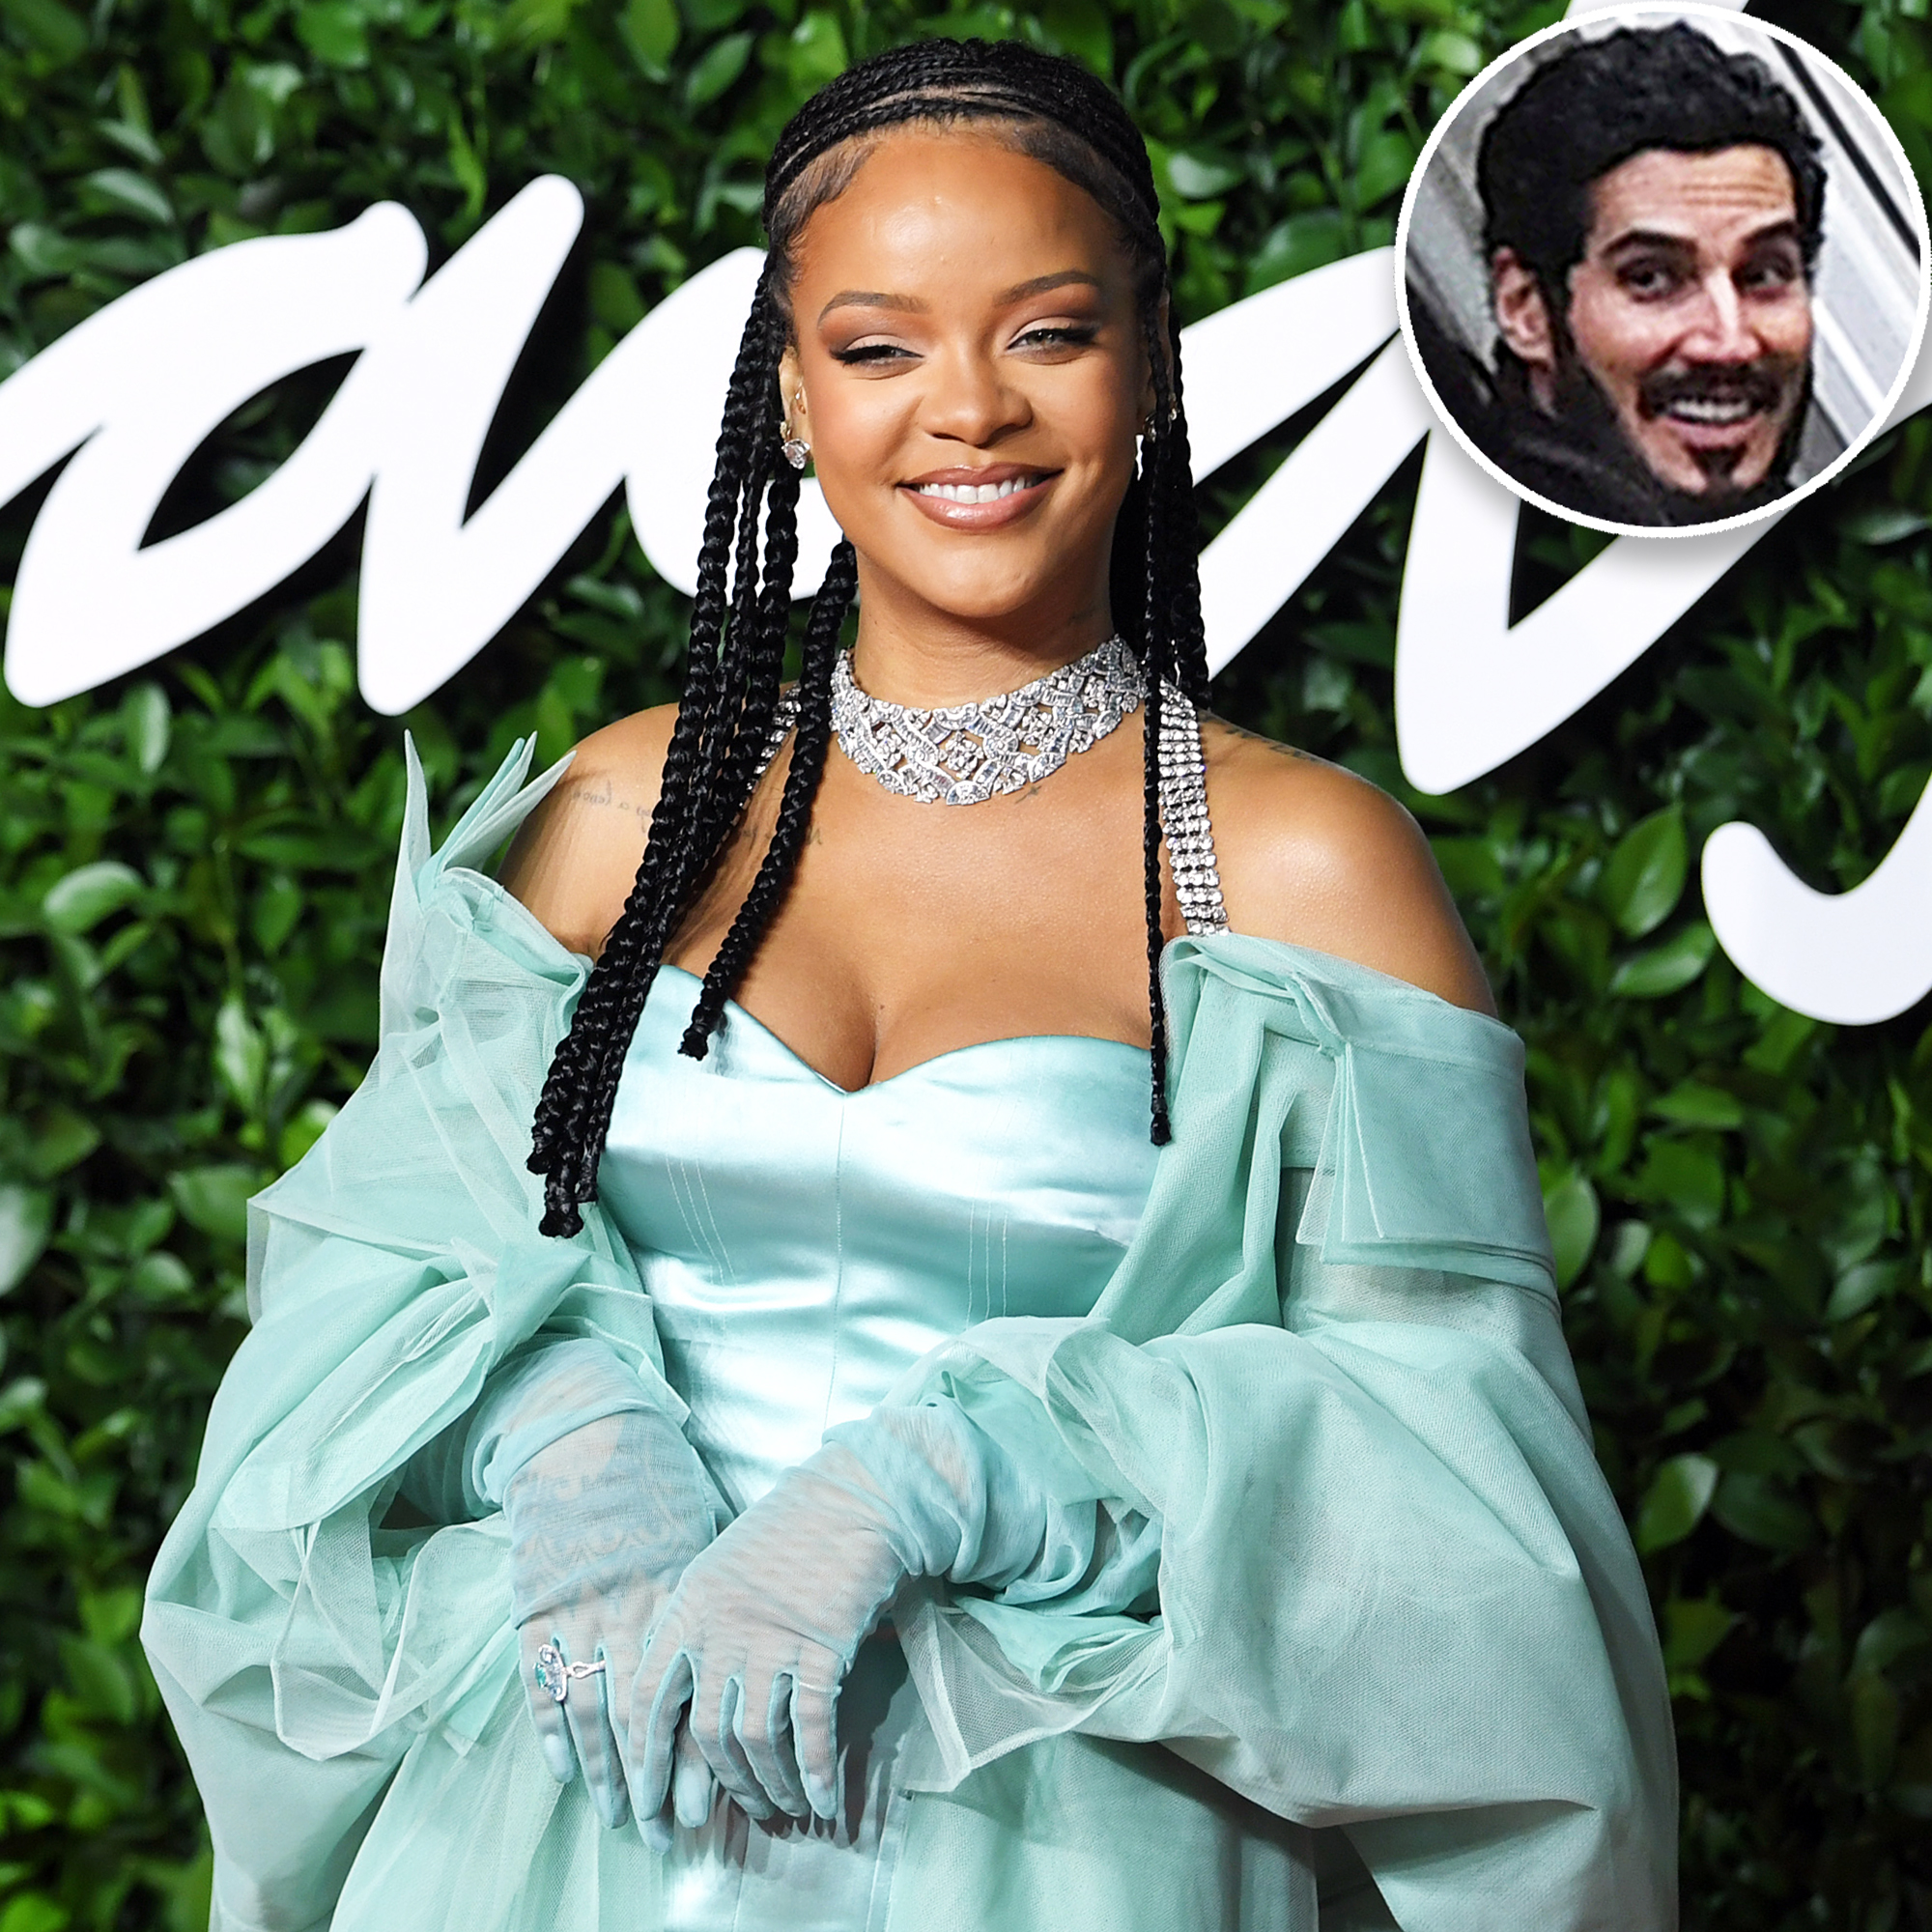 Rihanna's Friends Are Convinced Boyfriend Hassan Jameel 'Will Pop the Question' This Holiday Season